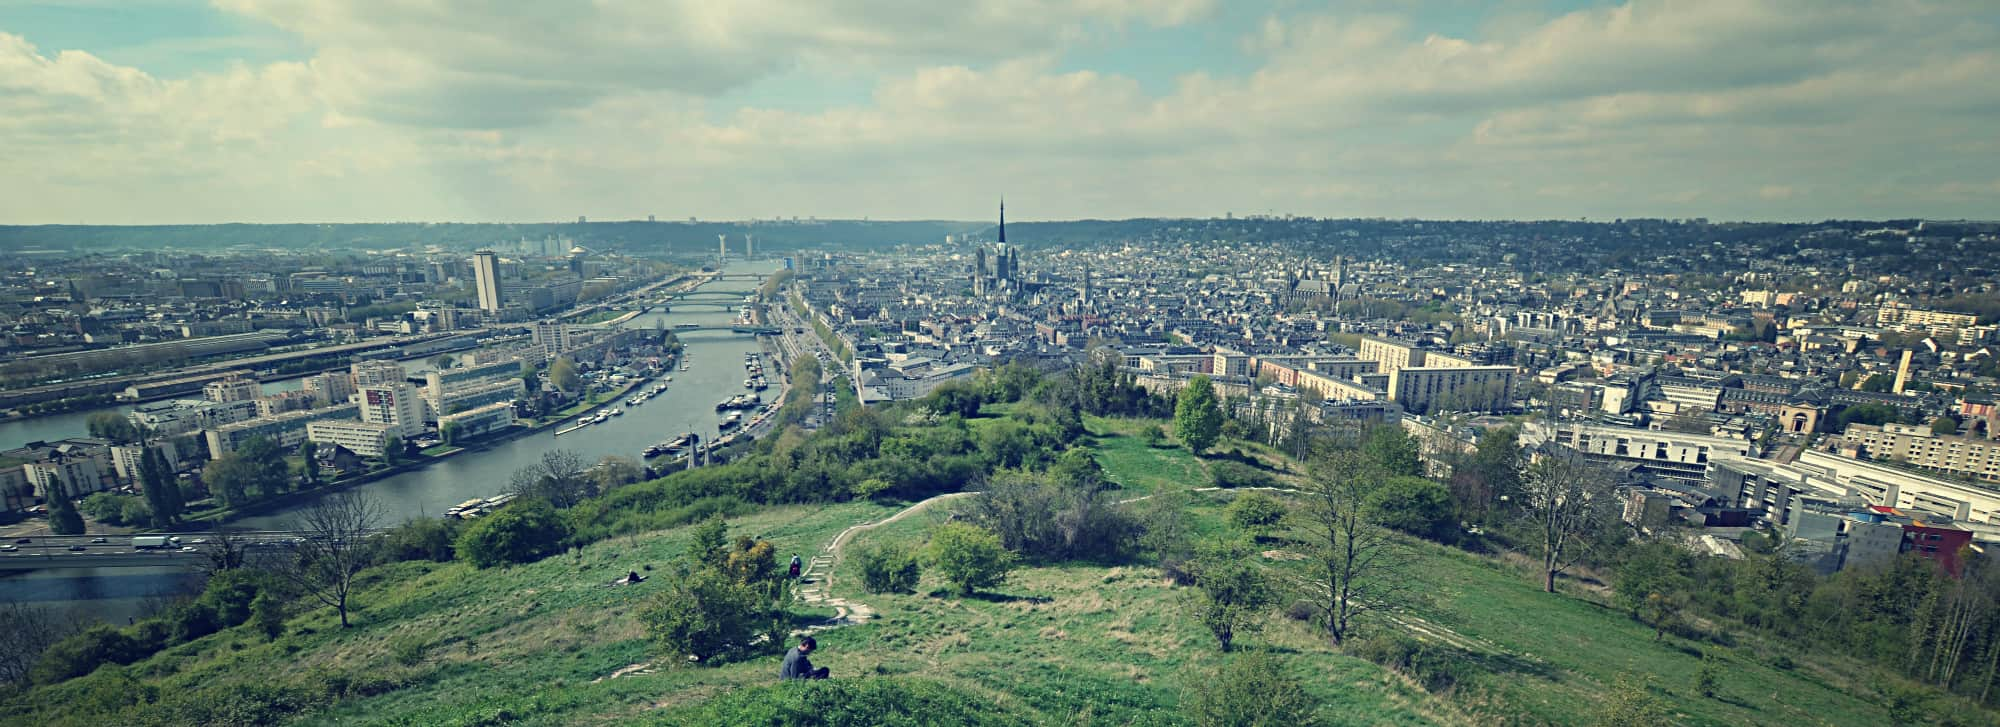 Colline Sainte Catherine Rouen Bonsecours Normandie Panorama